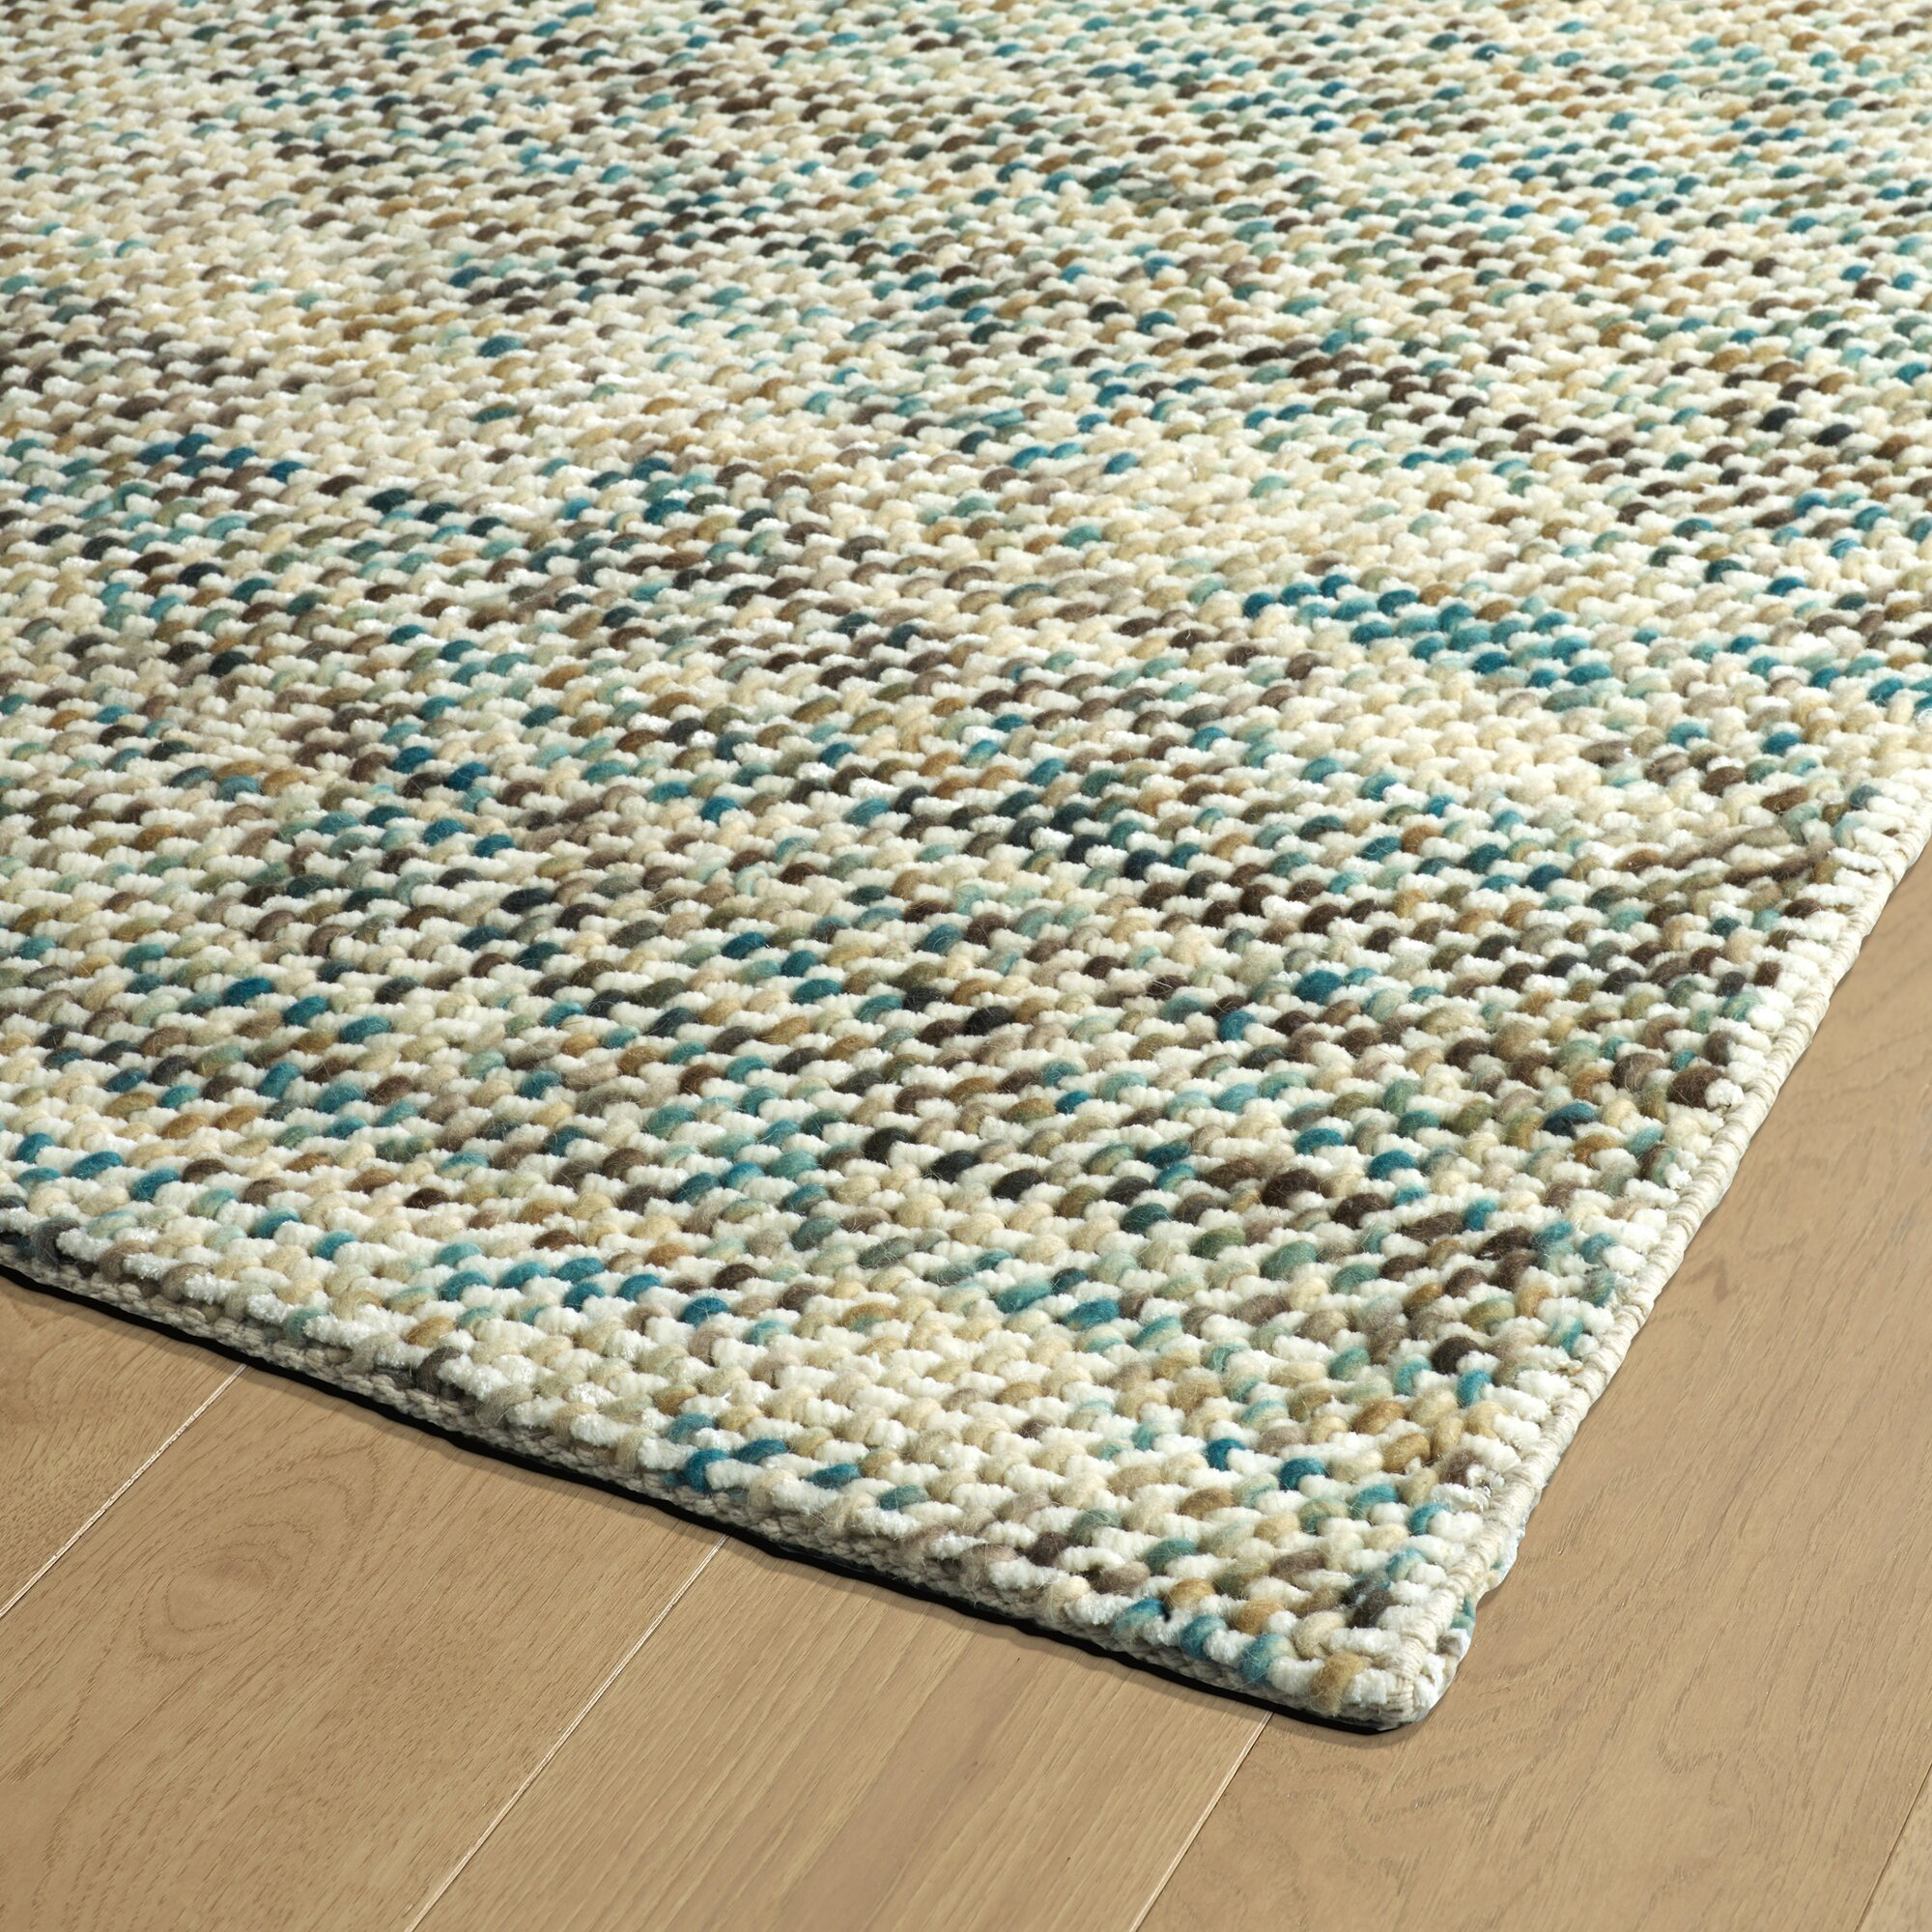 kayoom wayfair co pdp turquoise rugs uk rug reviews area